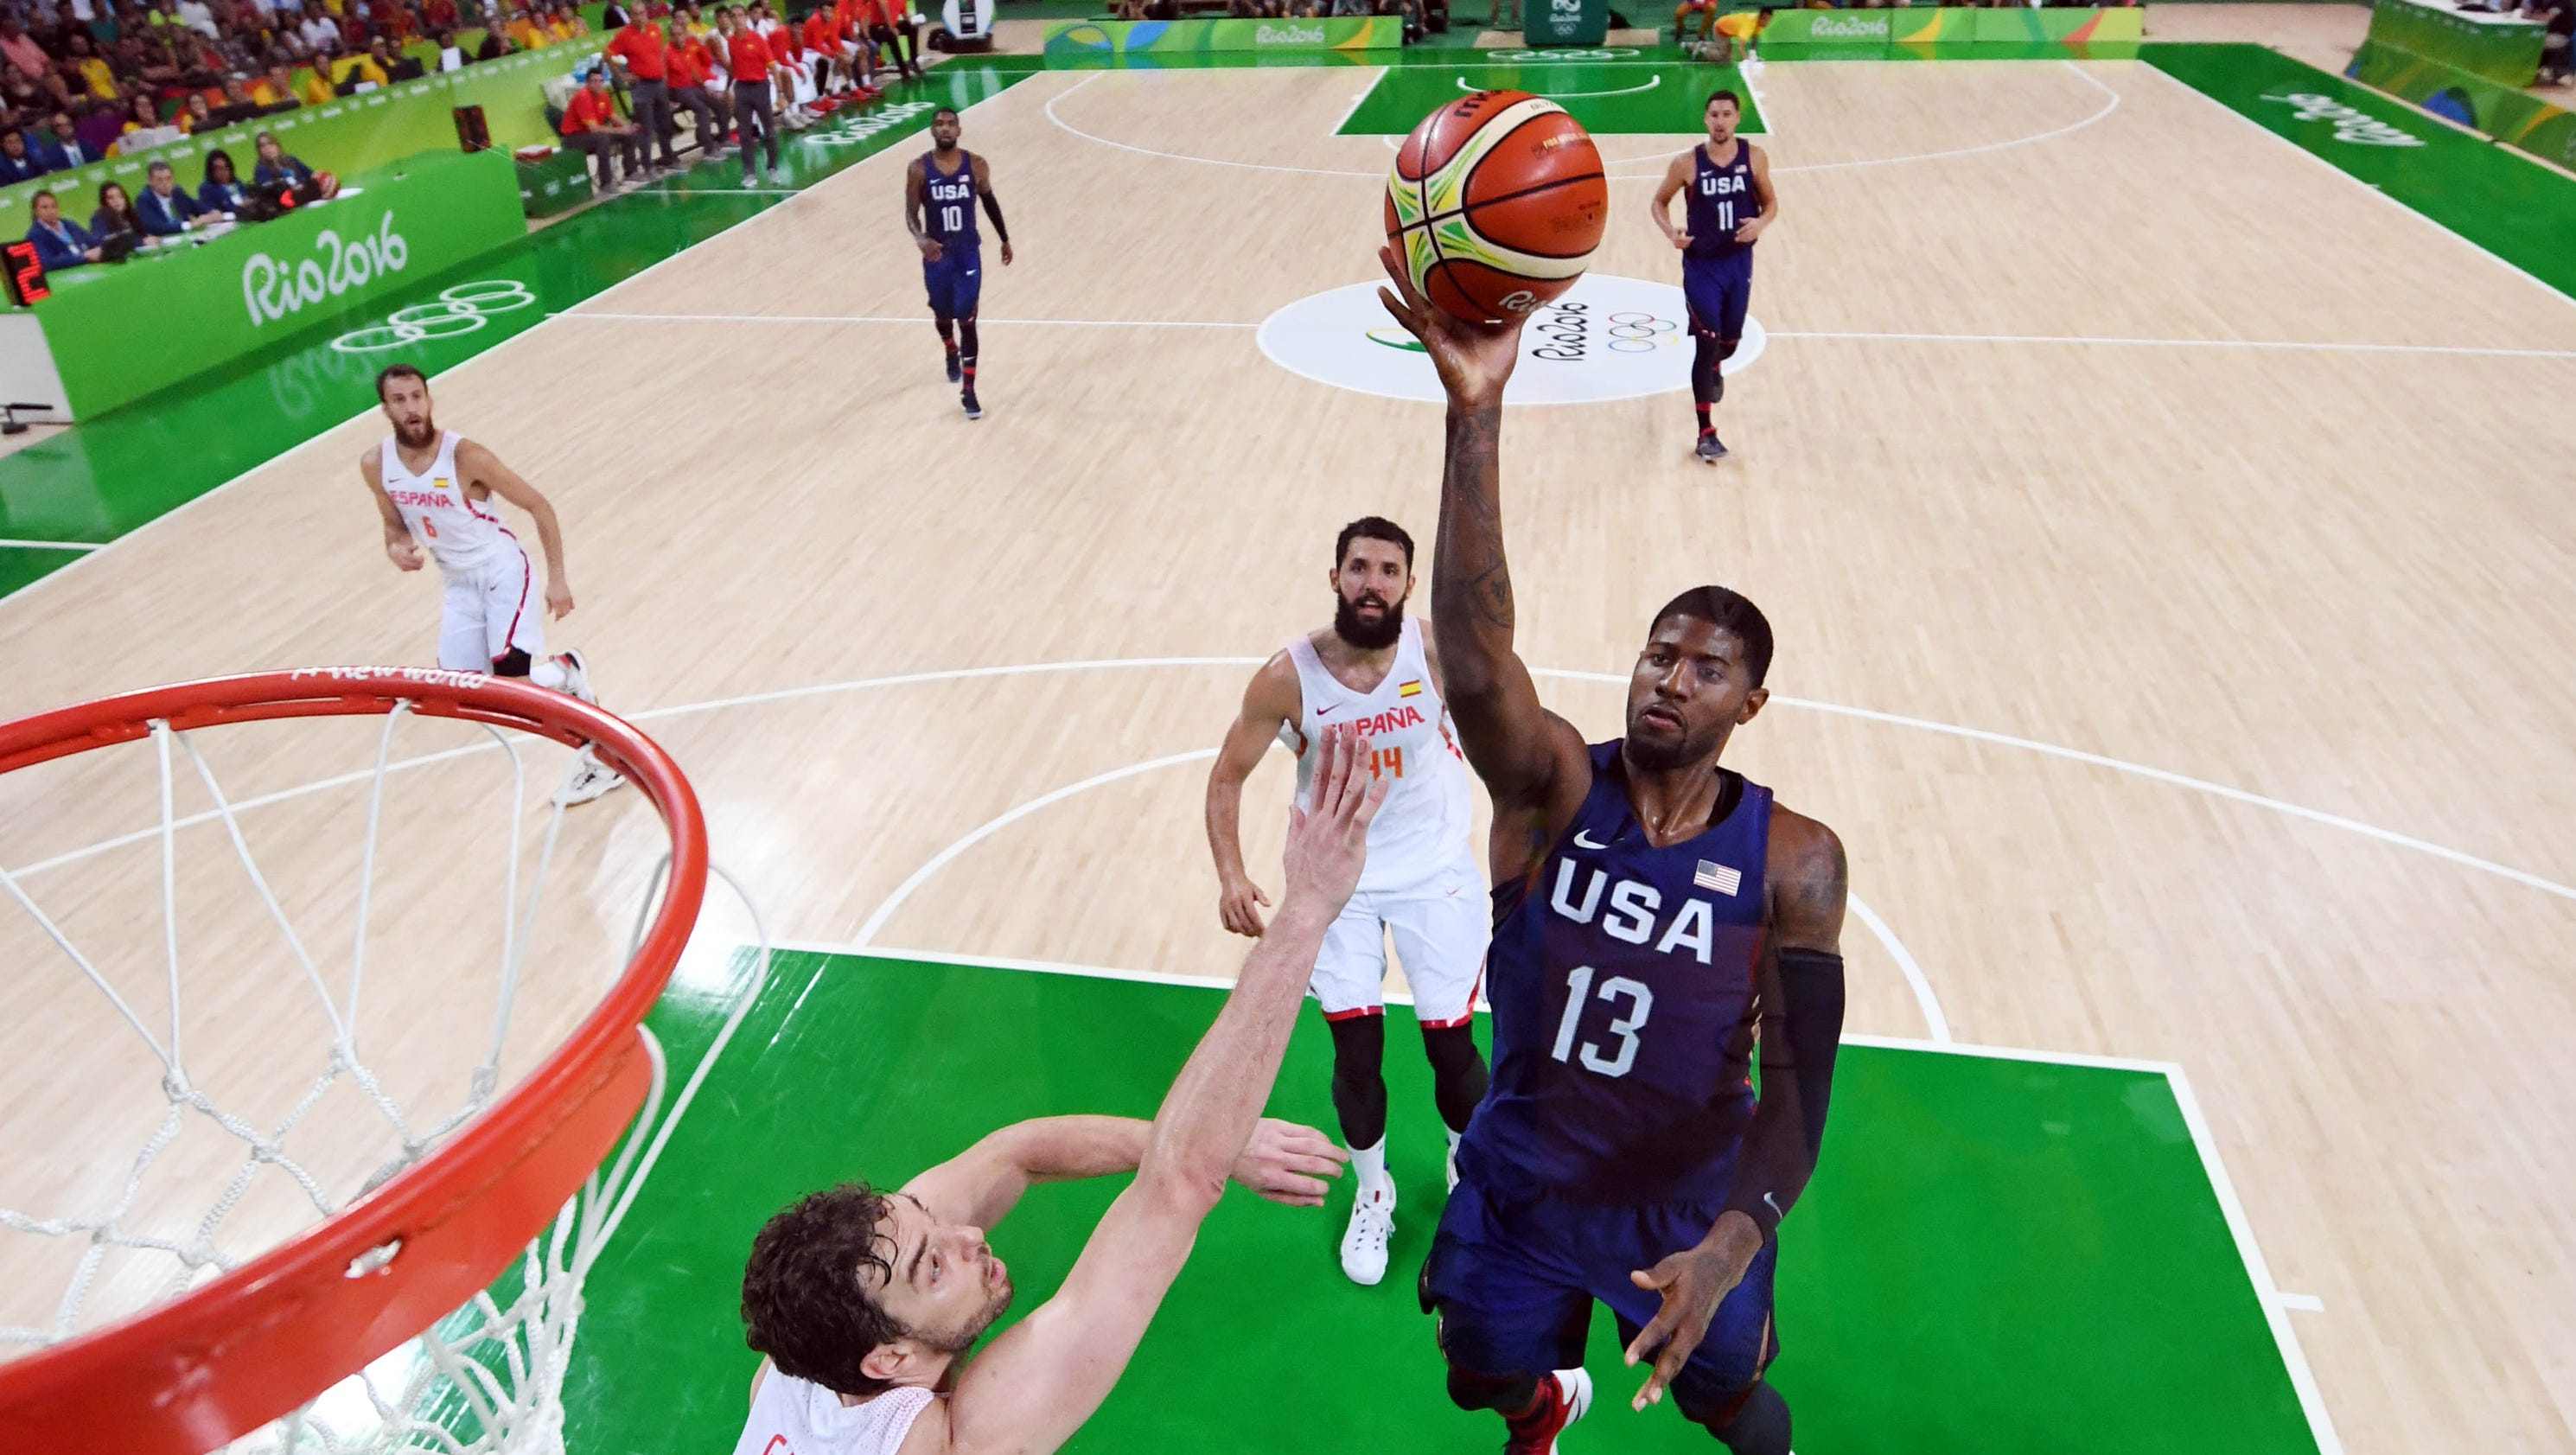 USA's intensity improves after full-contact practice